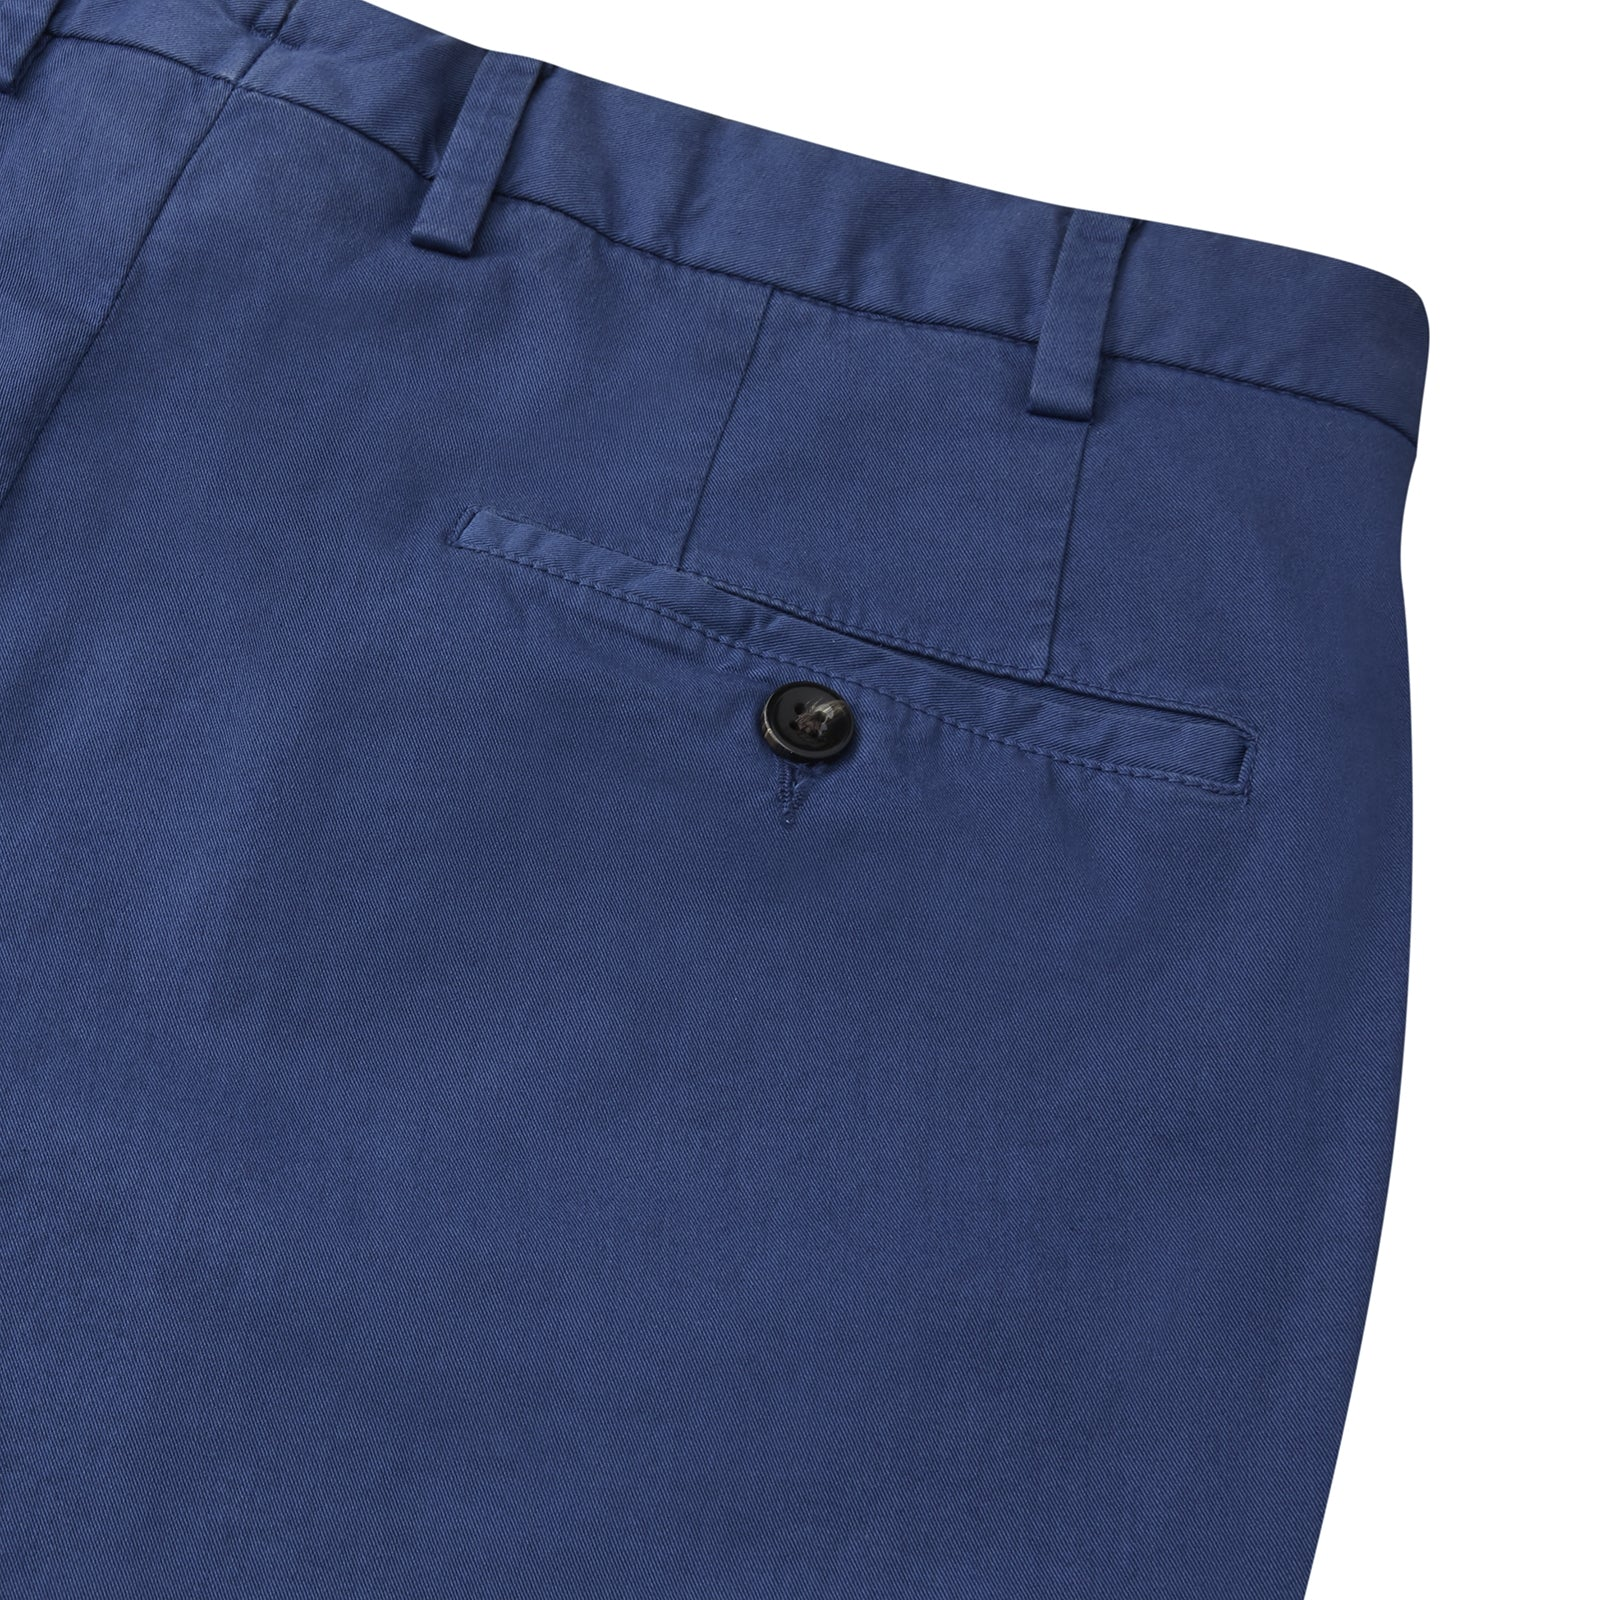 Navy Garment Dyed Cotton Chinos